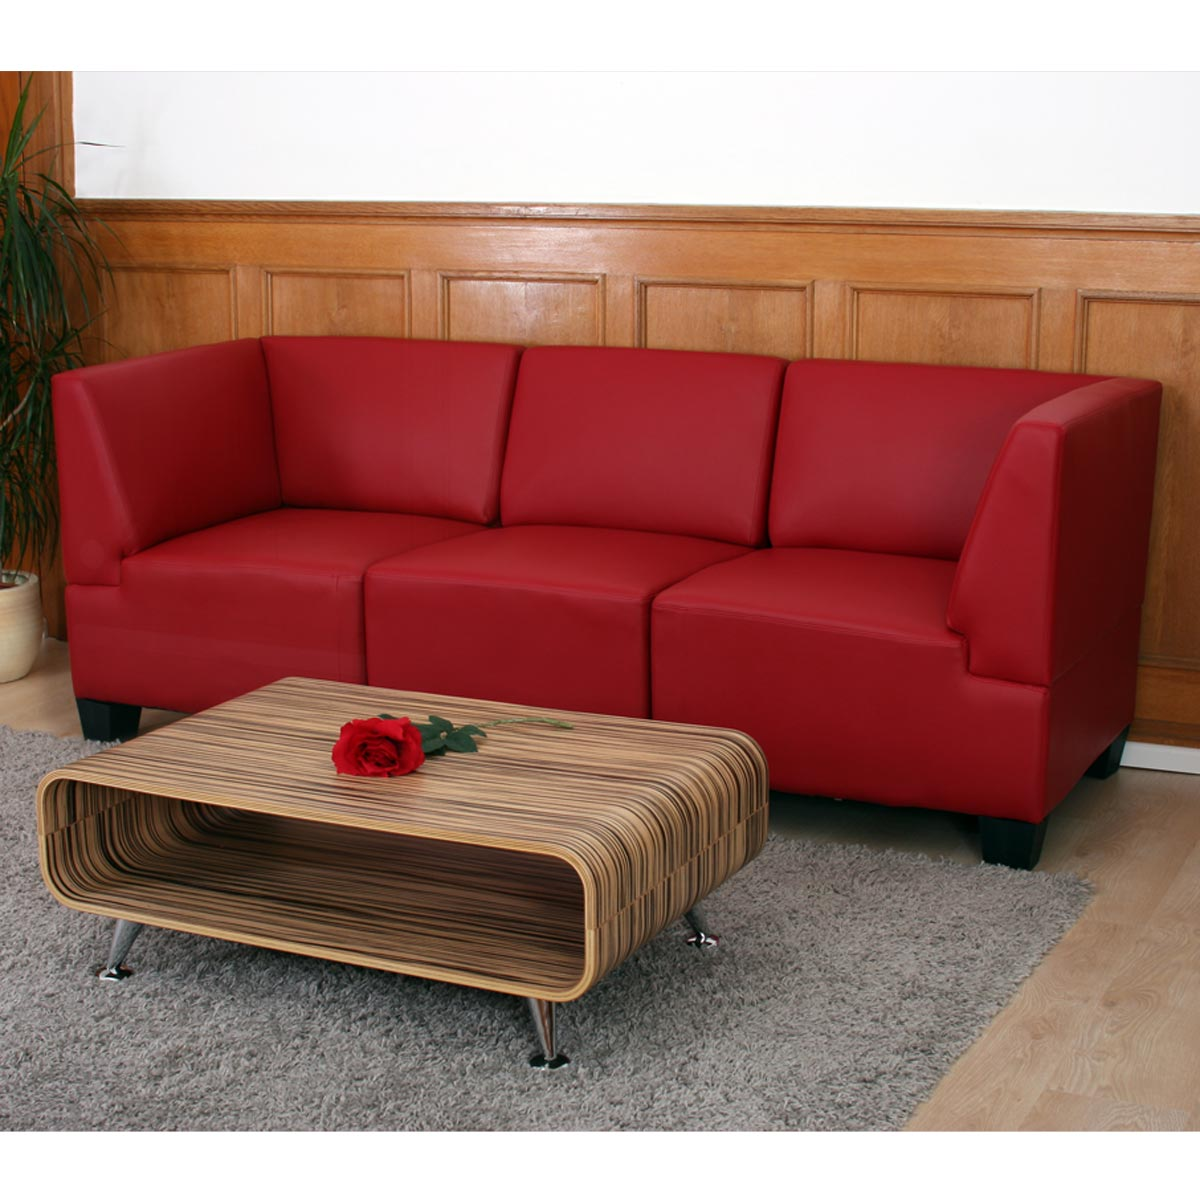 modular dreisitzer sofa couch lyon kunstleder schwarz rot creme. Black Bedroom Furniture Sets. Home Design Ideas